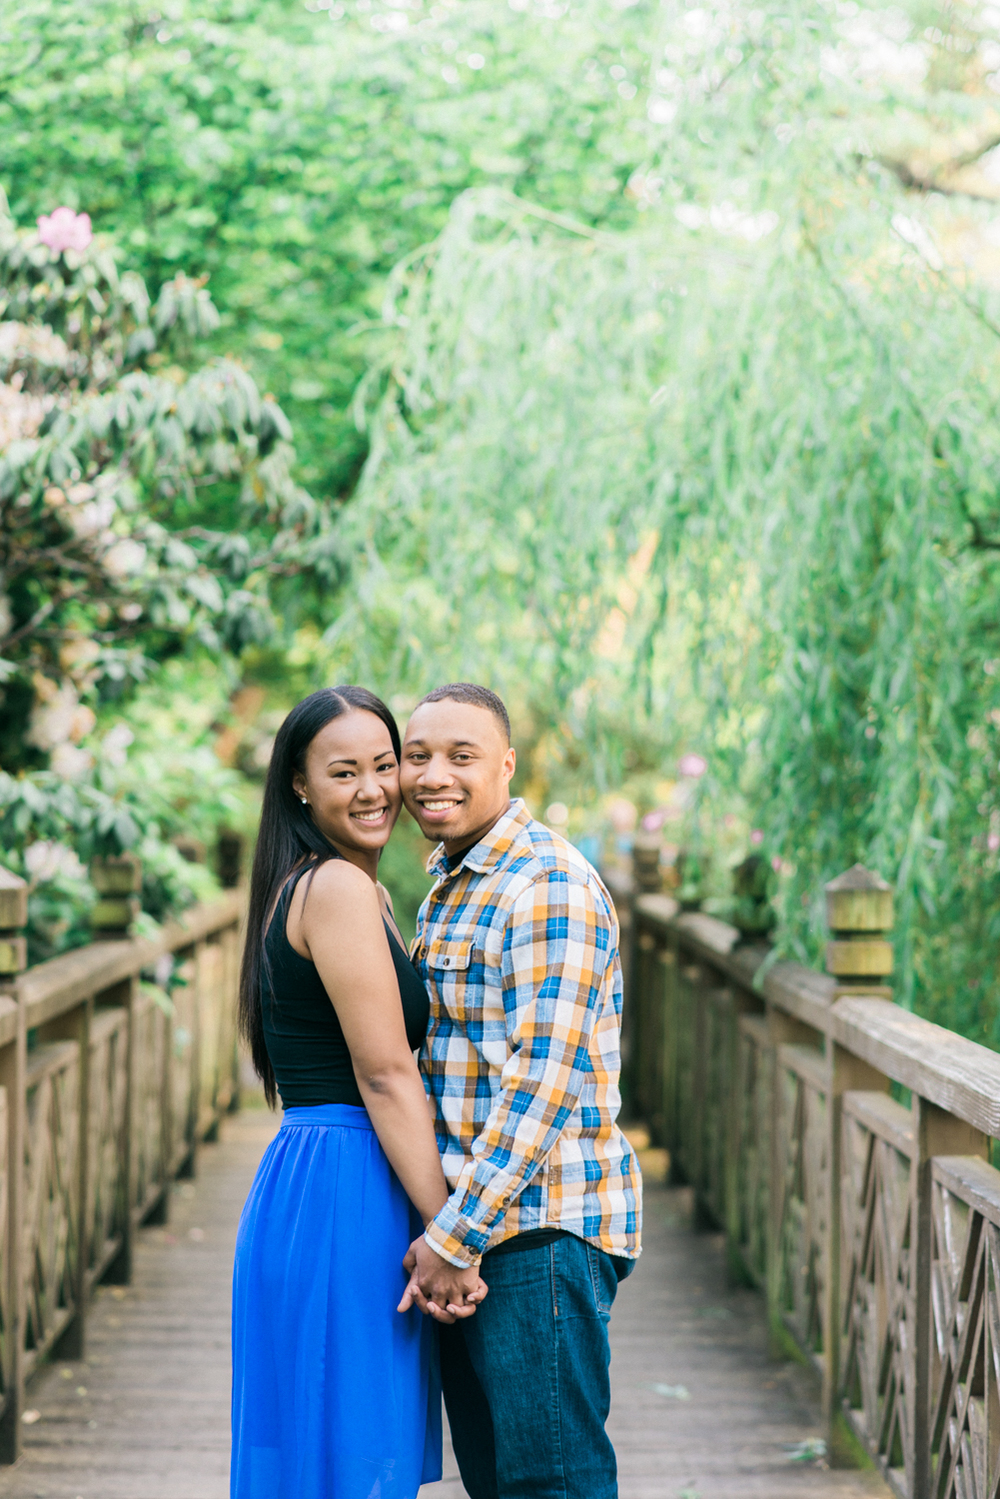 portland-engagement-photographer-wsu-graduation-portrait-crystal-springs-rhododendron-garden-shelley-marie-photo-38